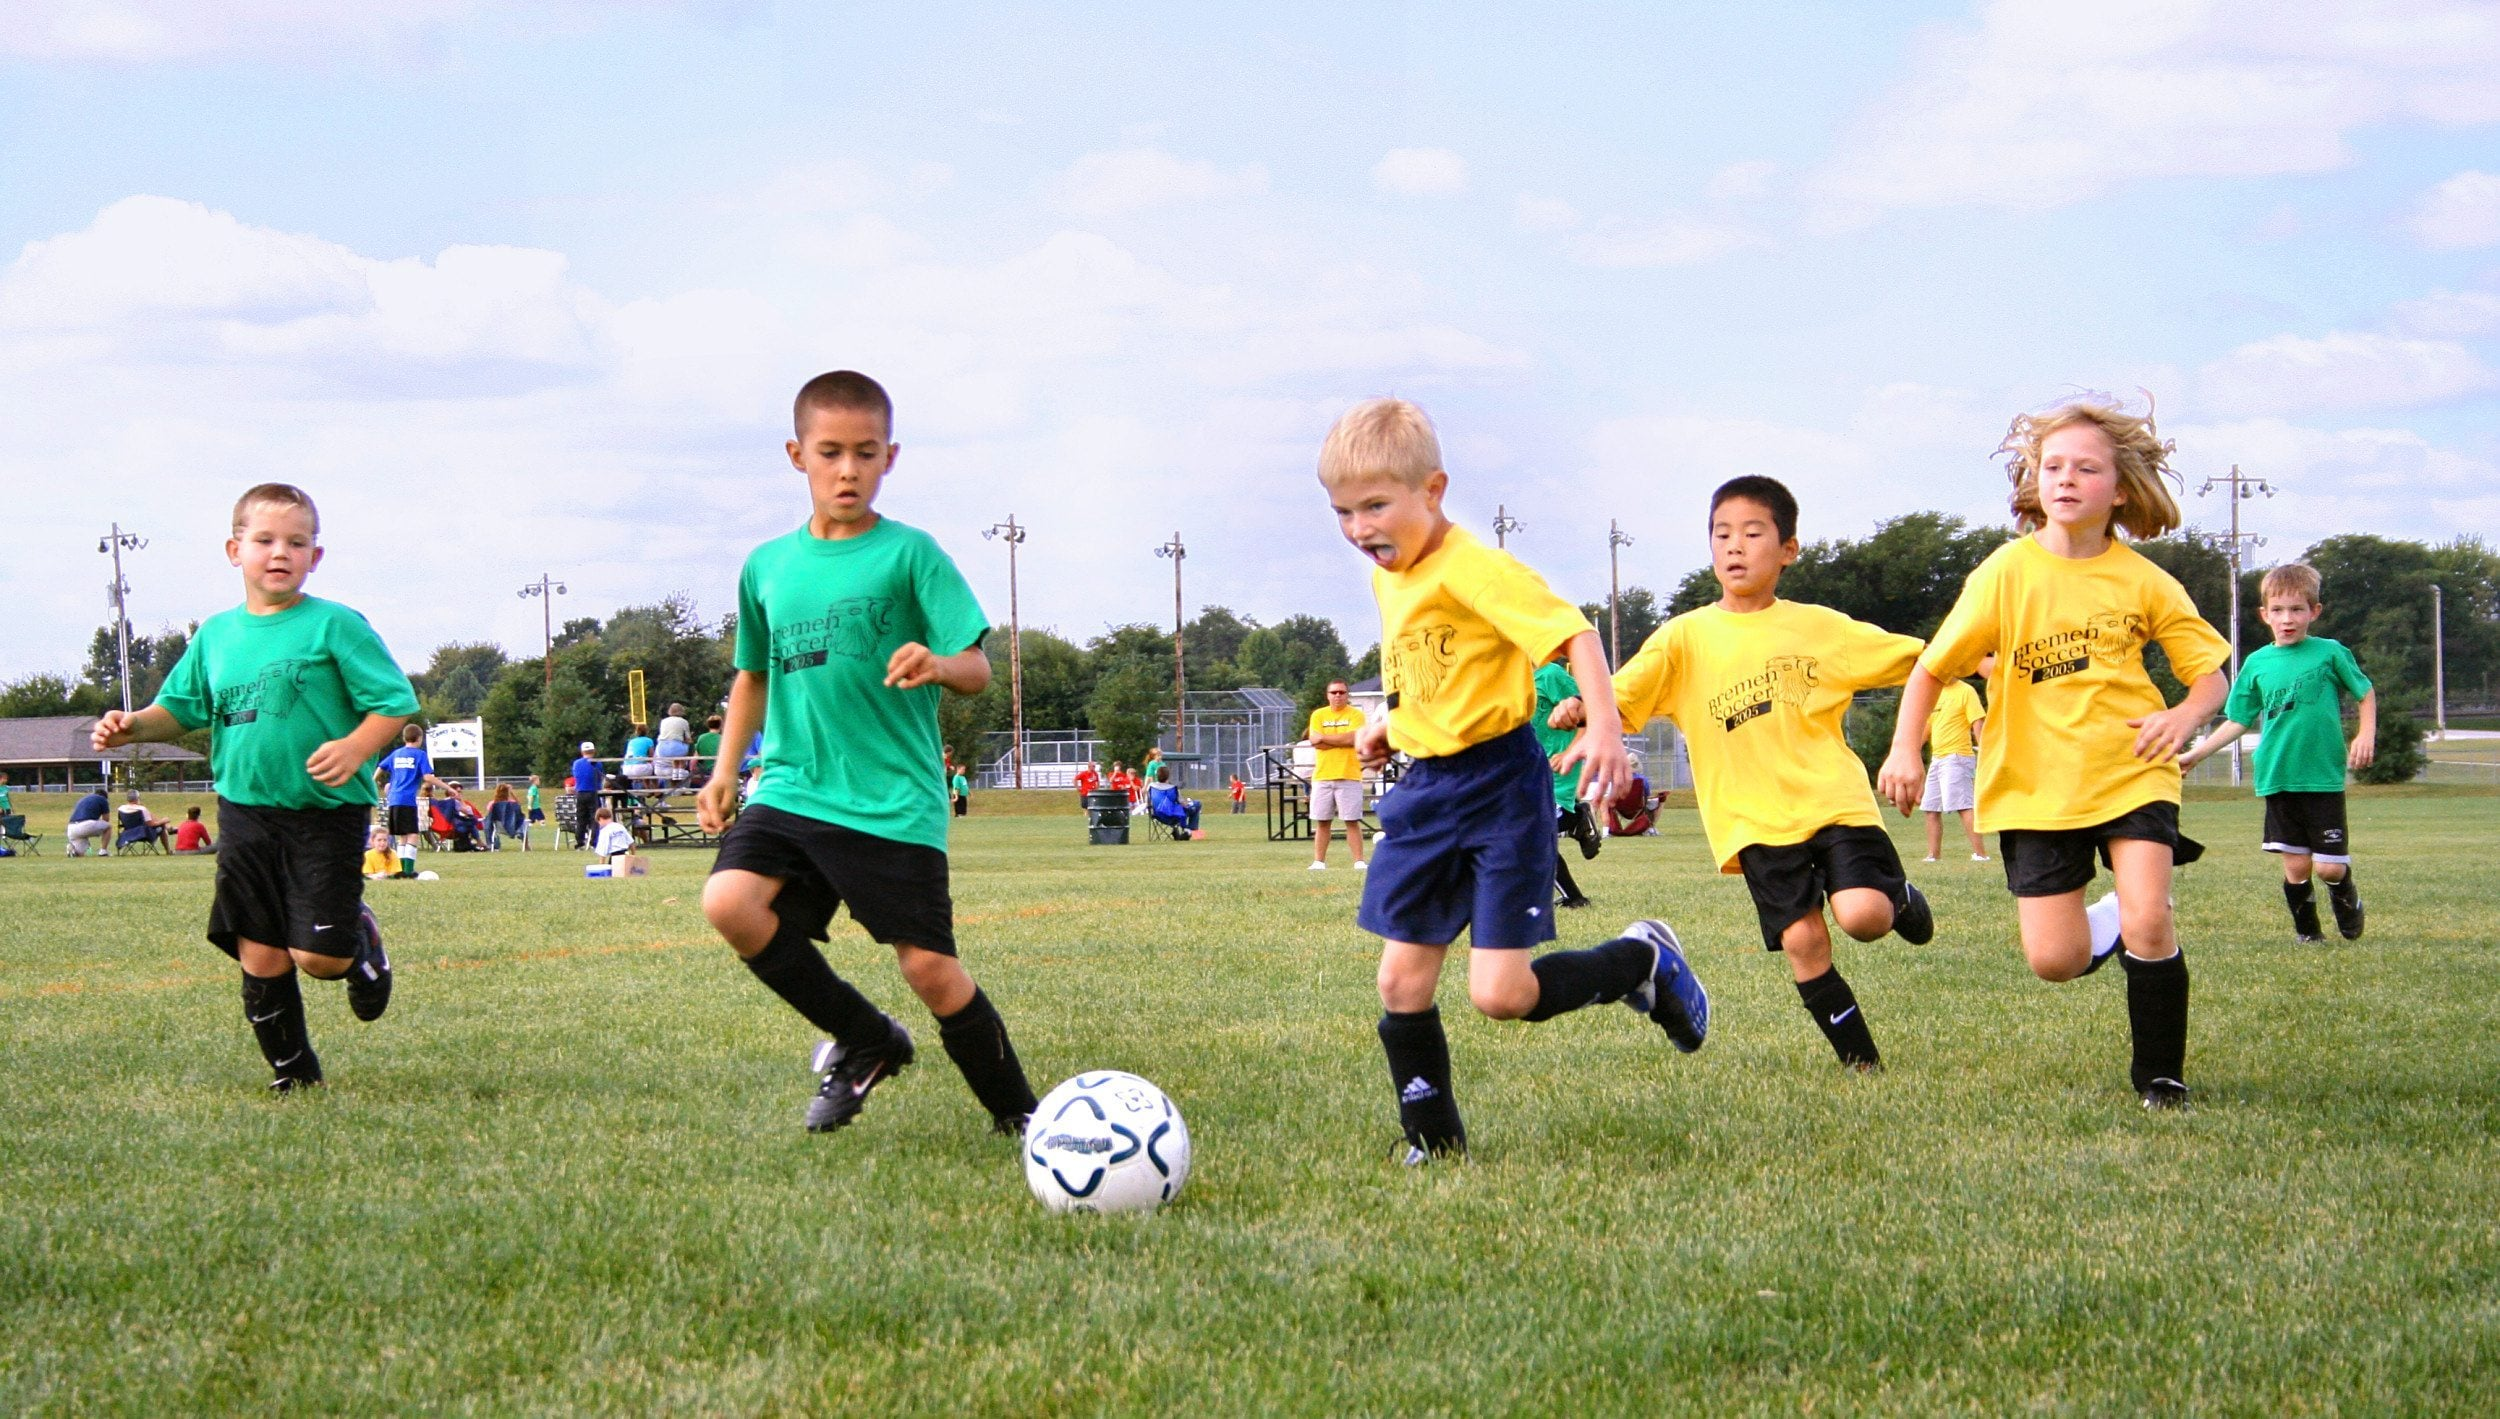 Youth-soccer-indiana